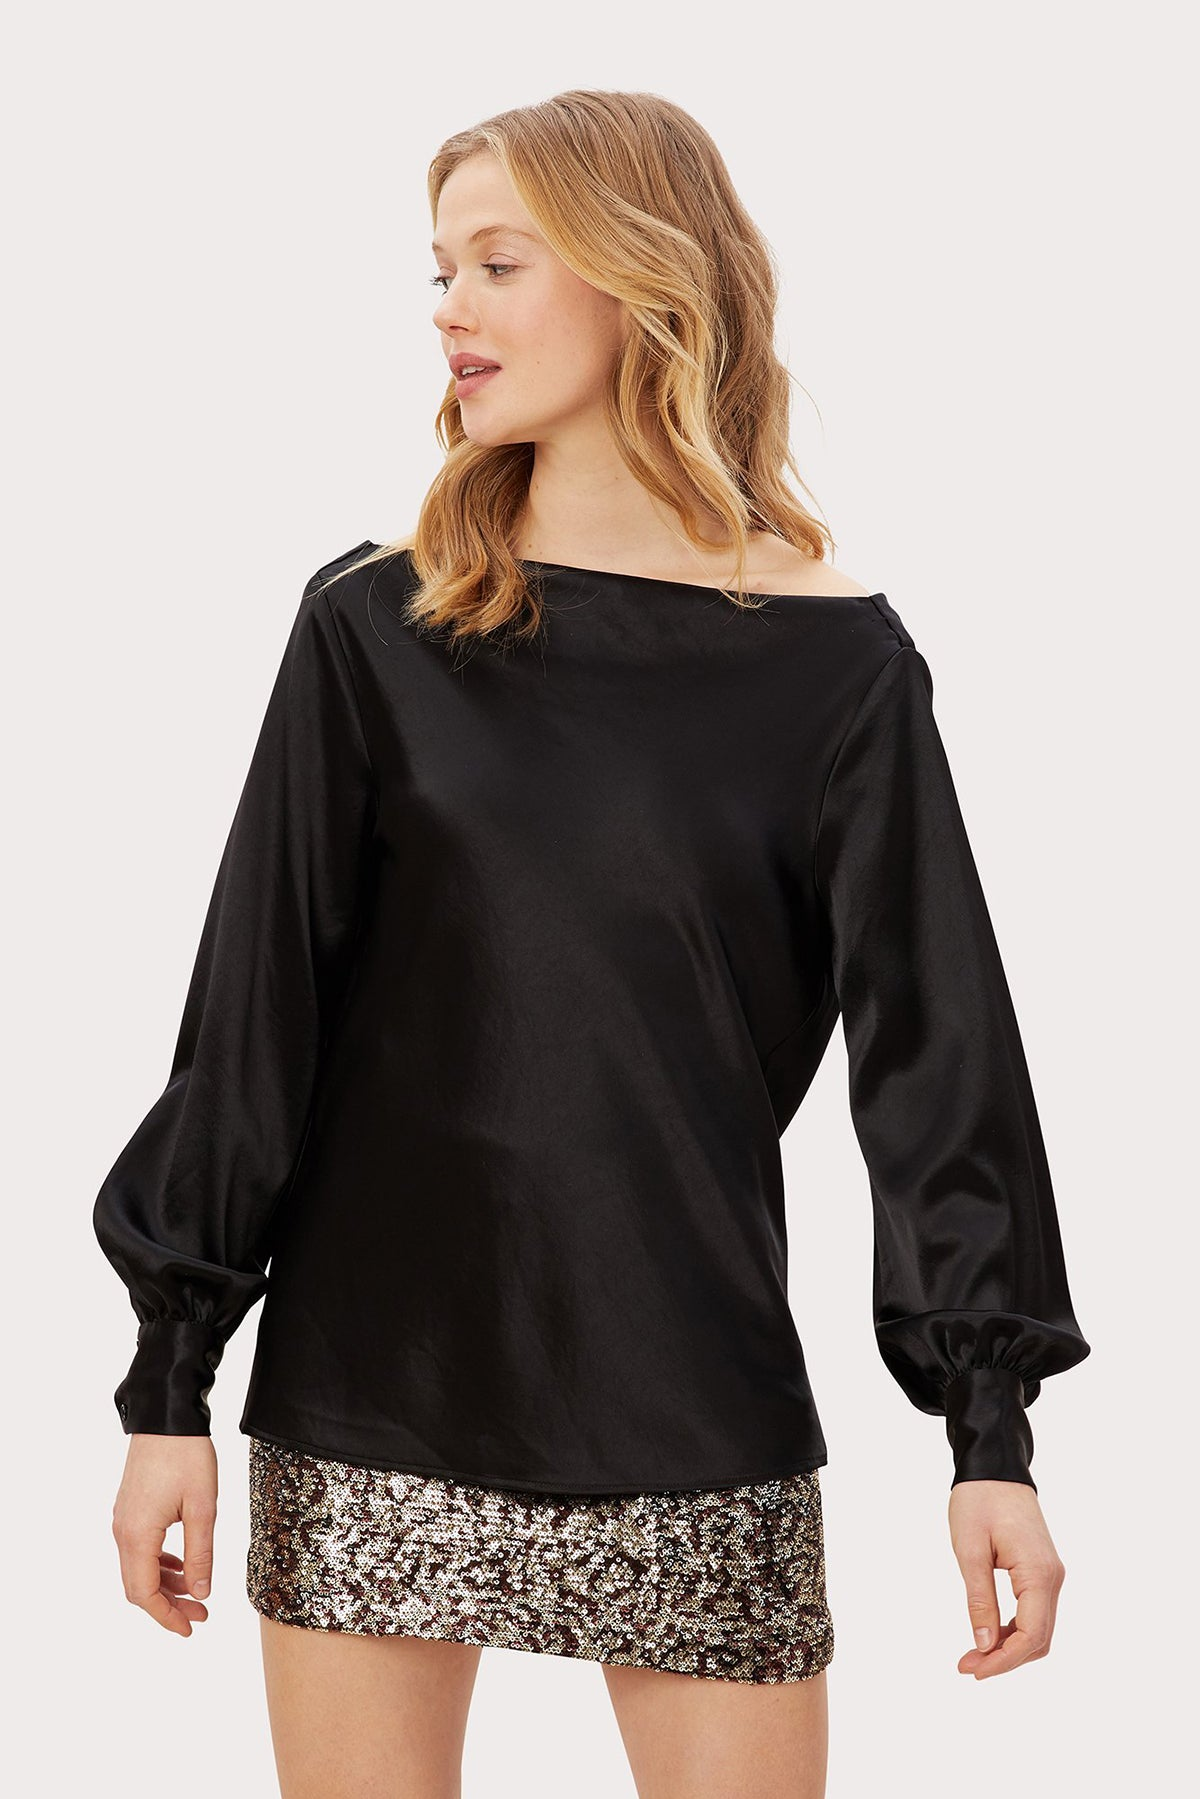 Hammered Satin Rachele Cowl Back Top